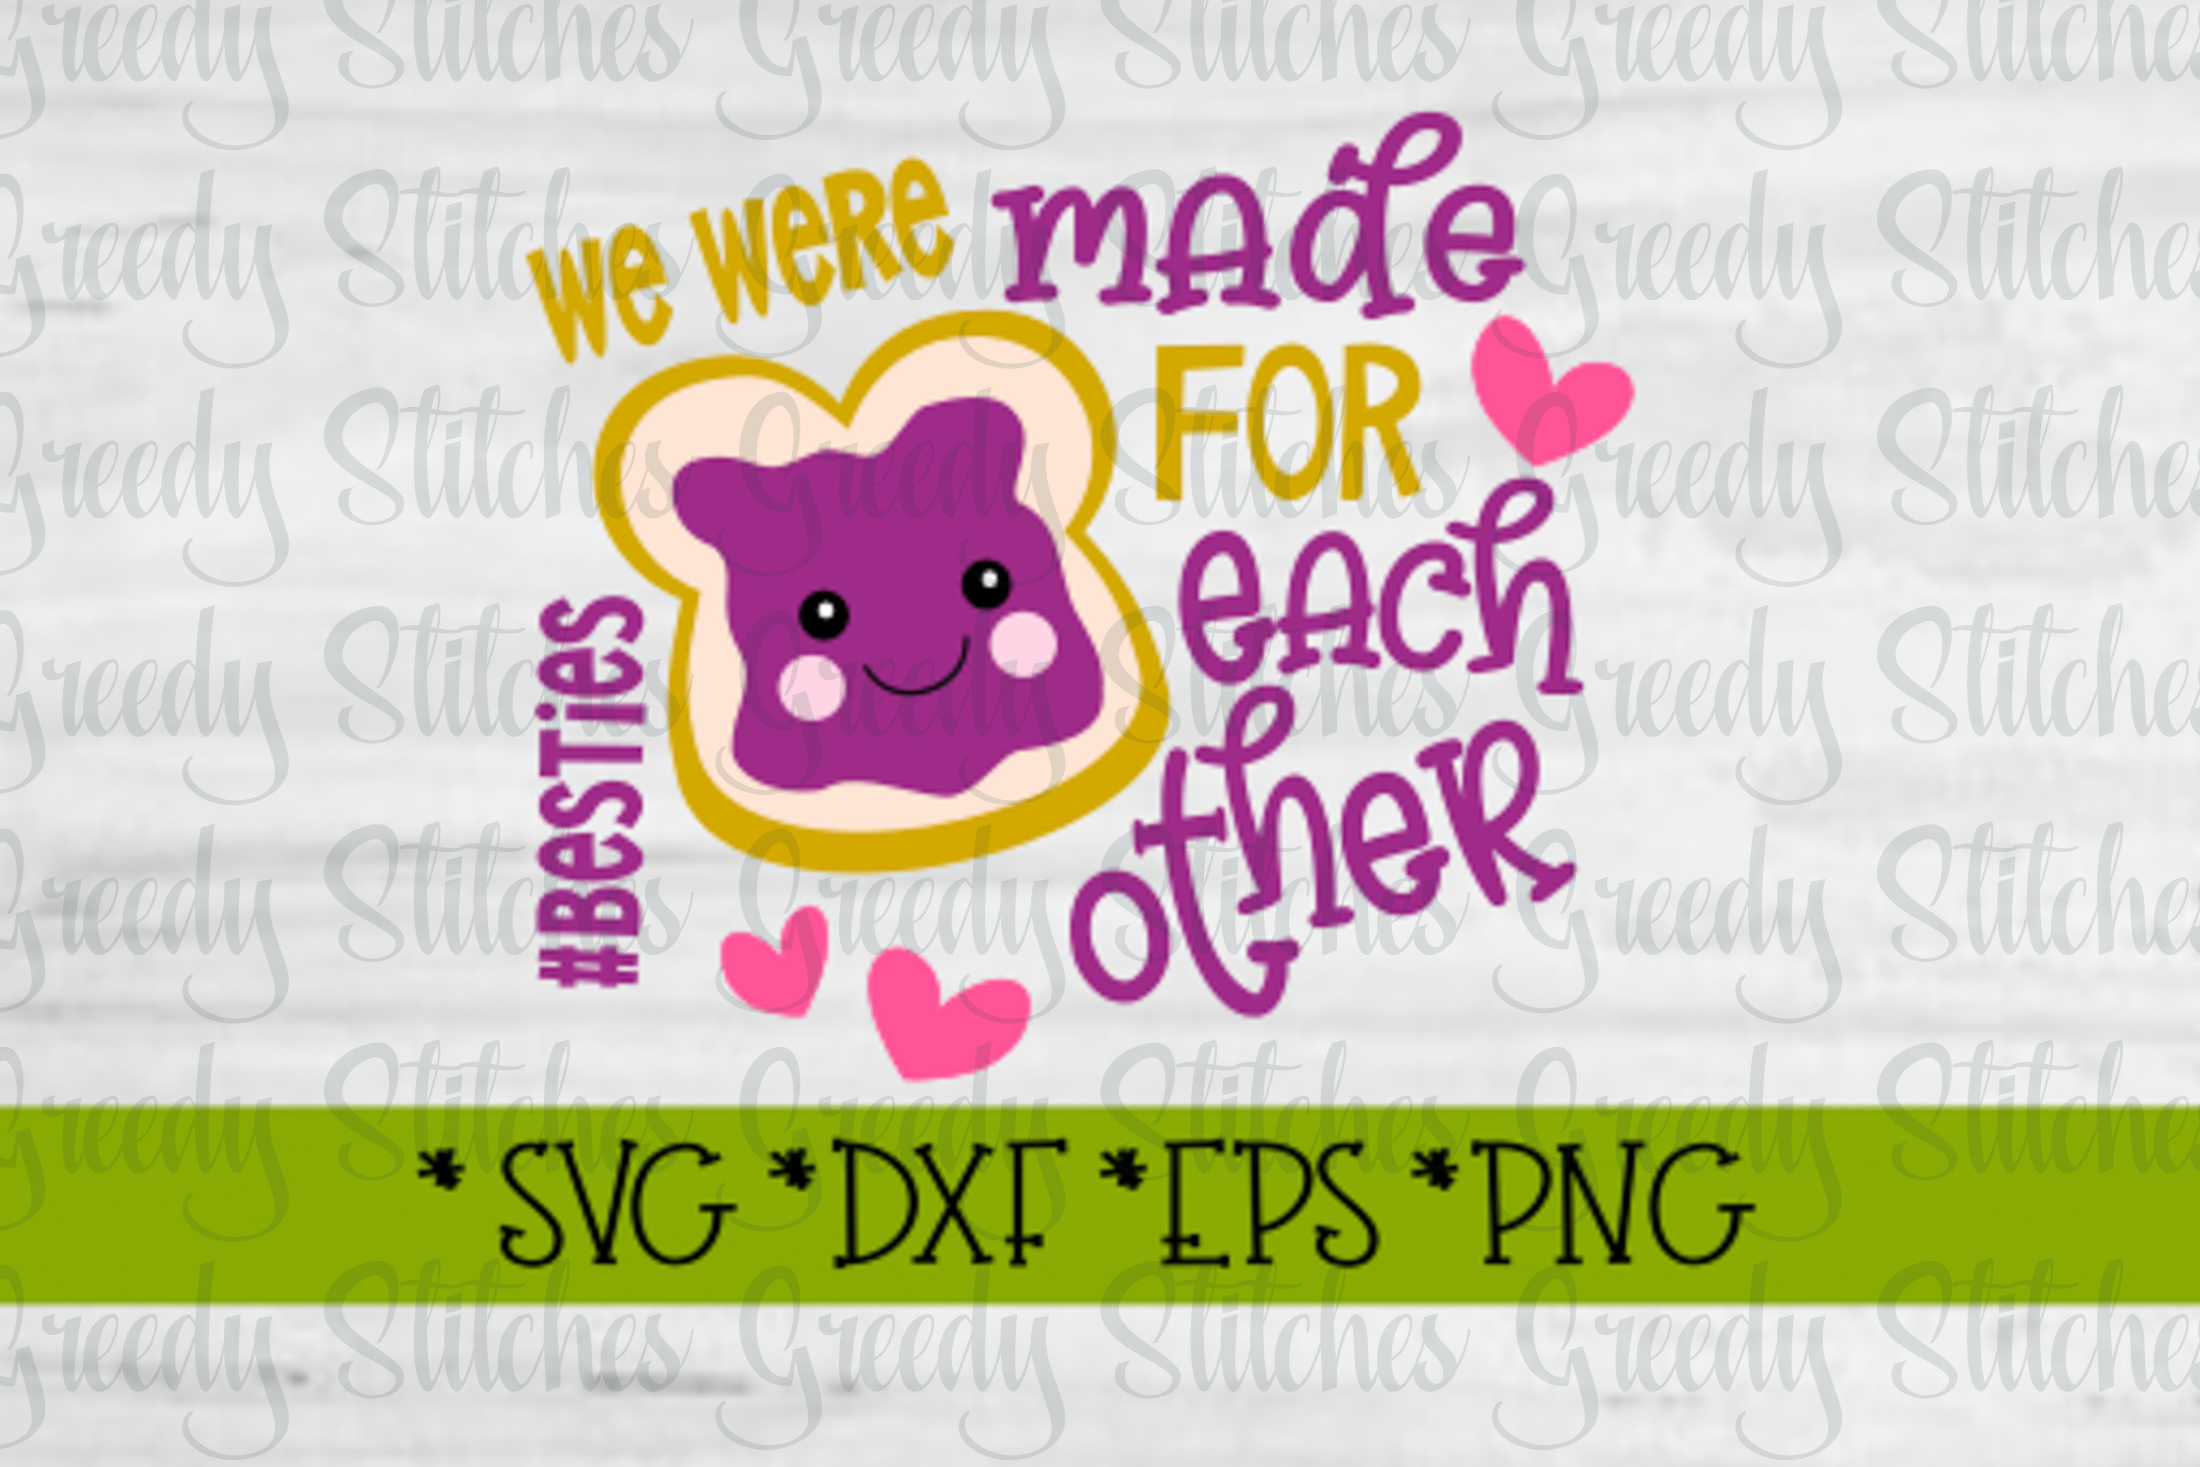 Peanut Butter & Jelly SVG DXF EPS PNG | Best Friends SVG DXF example image 11